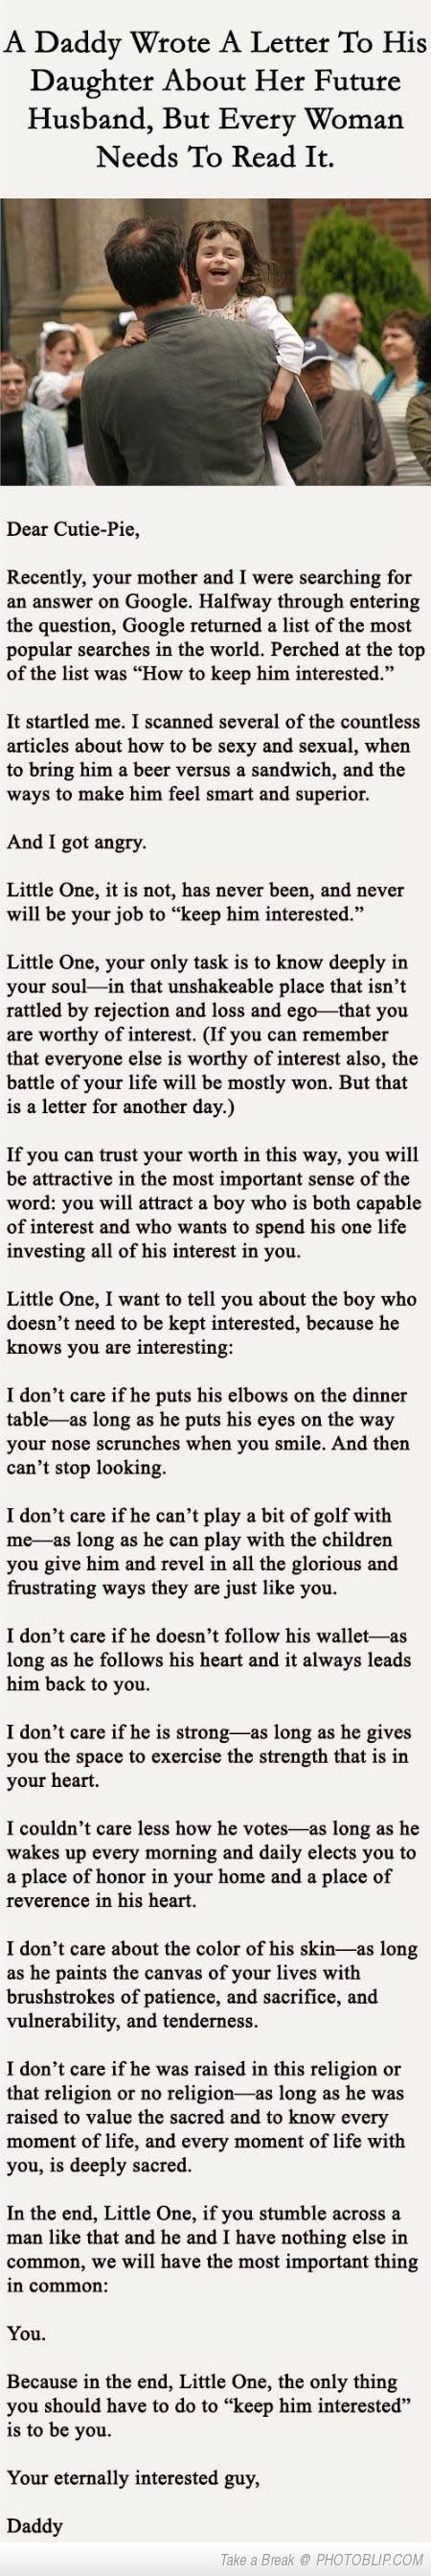 This is beautiful. But boys should remember this too! We are all worthy to have a love like that